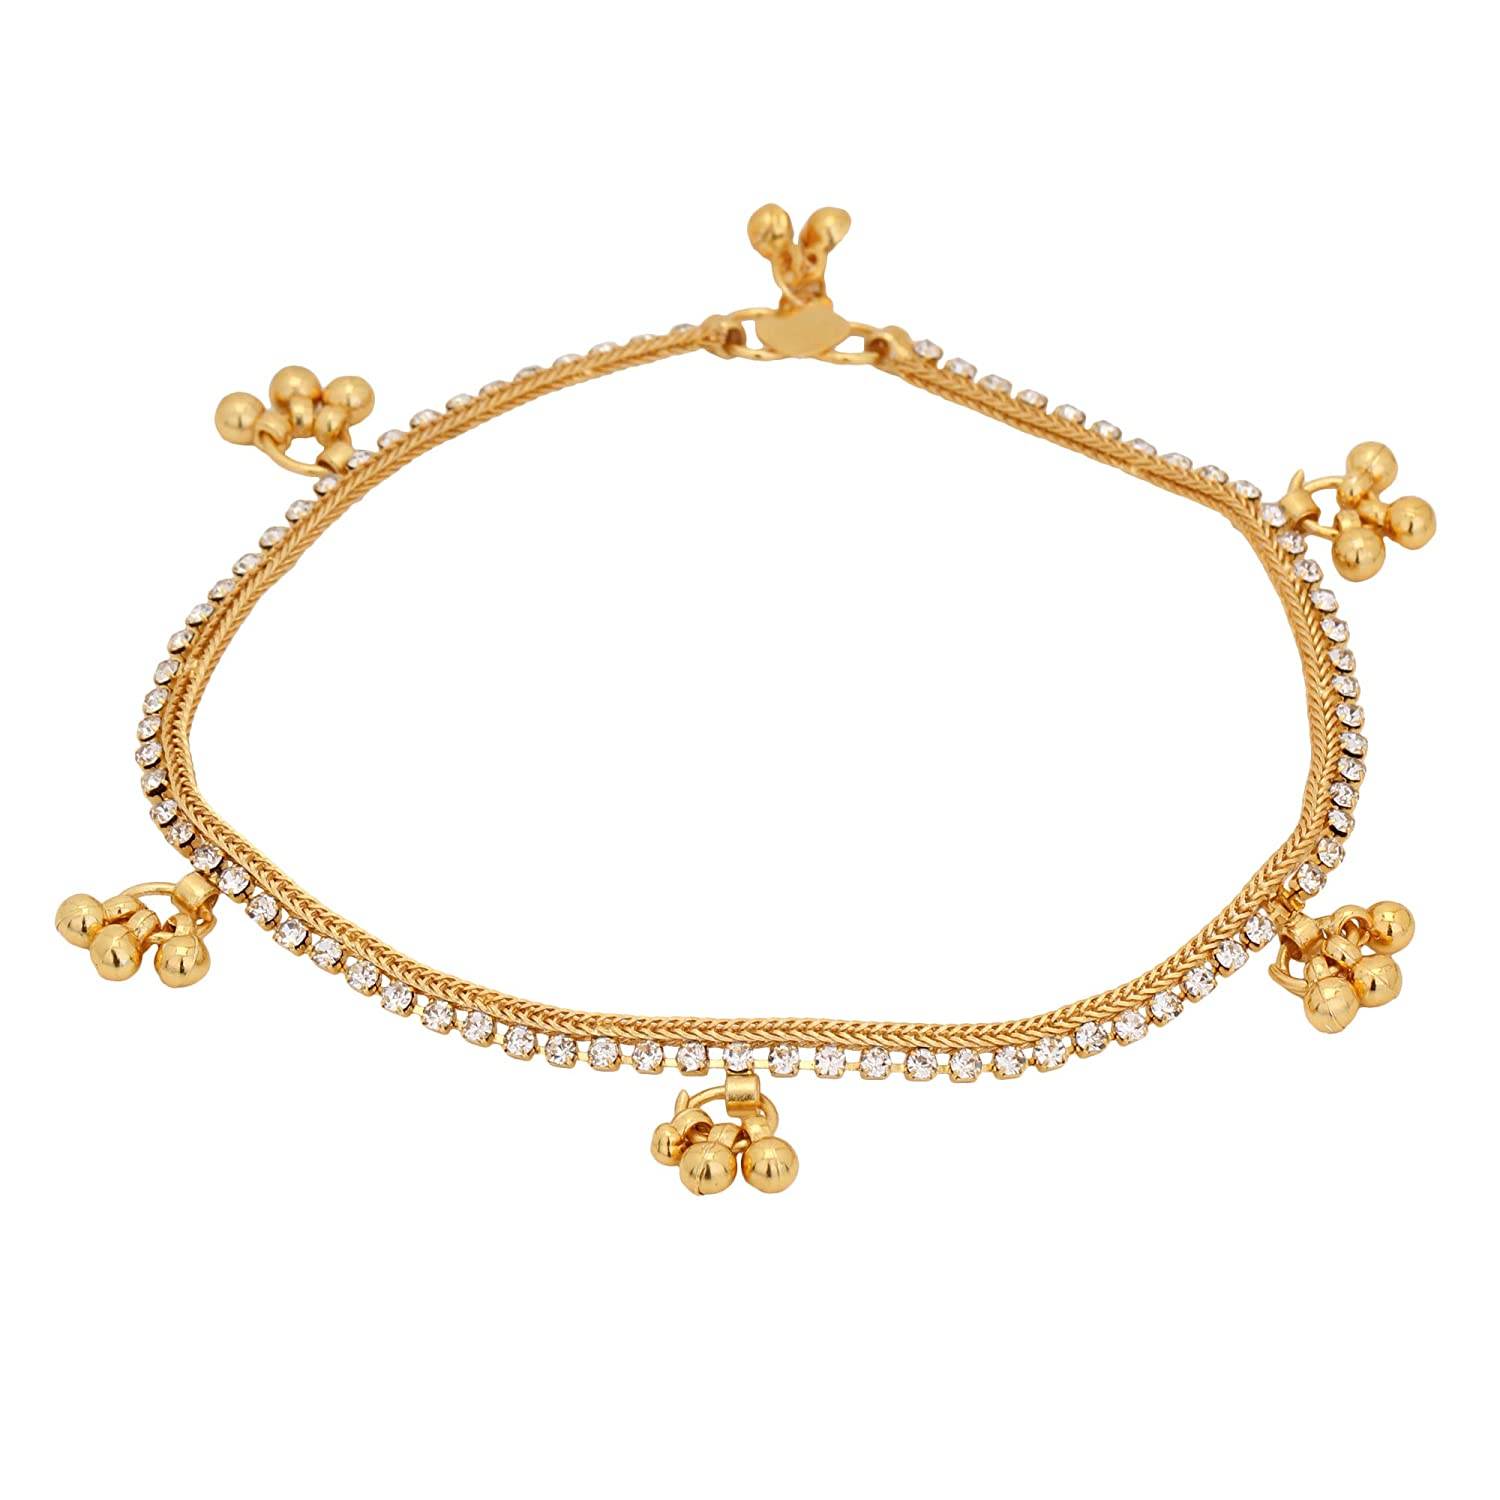 Fashion Jewelry Indian Traditional Crystal Stone Designer Bridal Foot Fashion Jewellery Anklets Jewelry & Watches